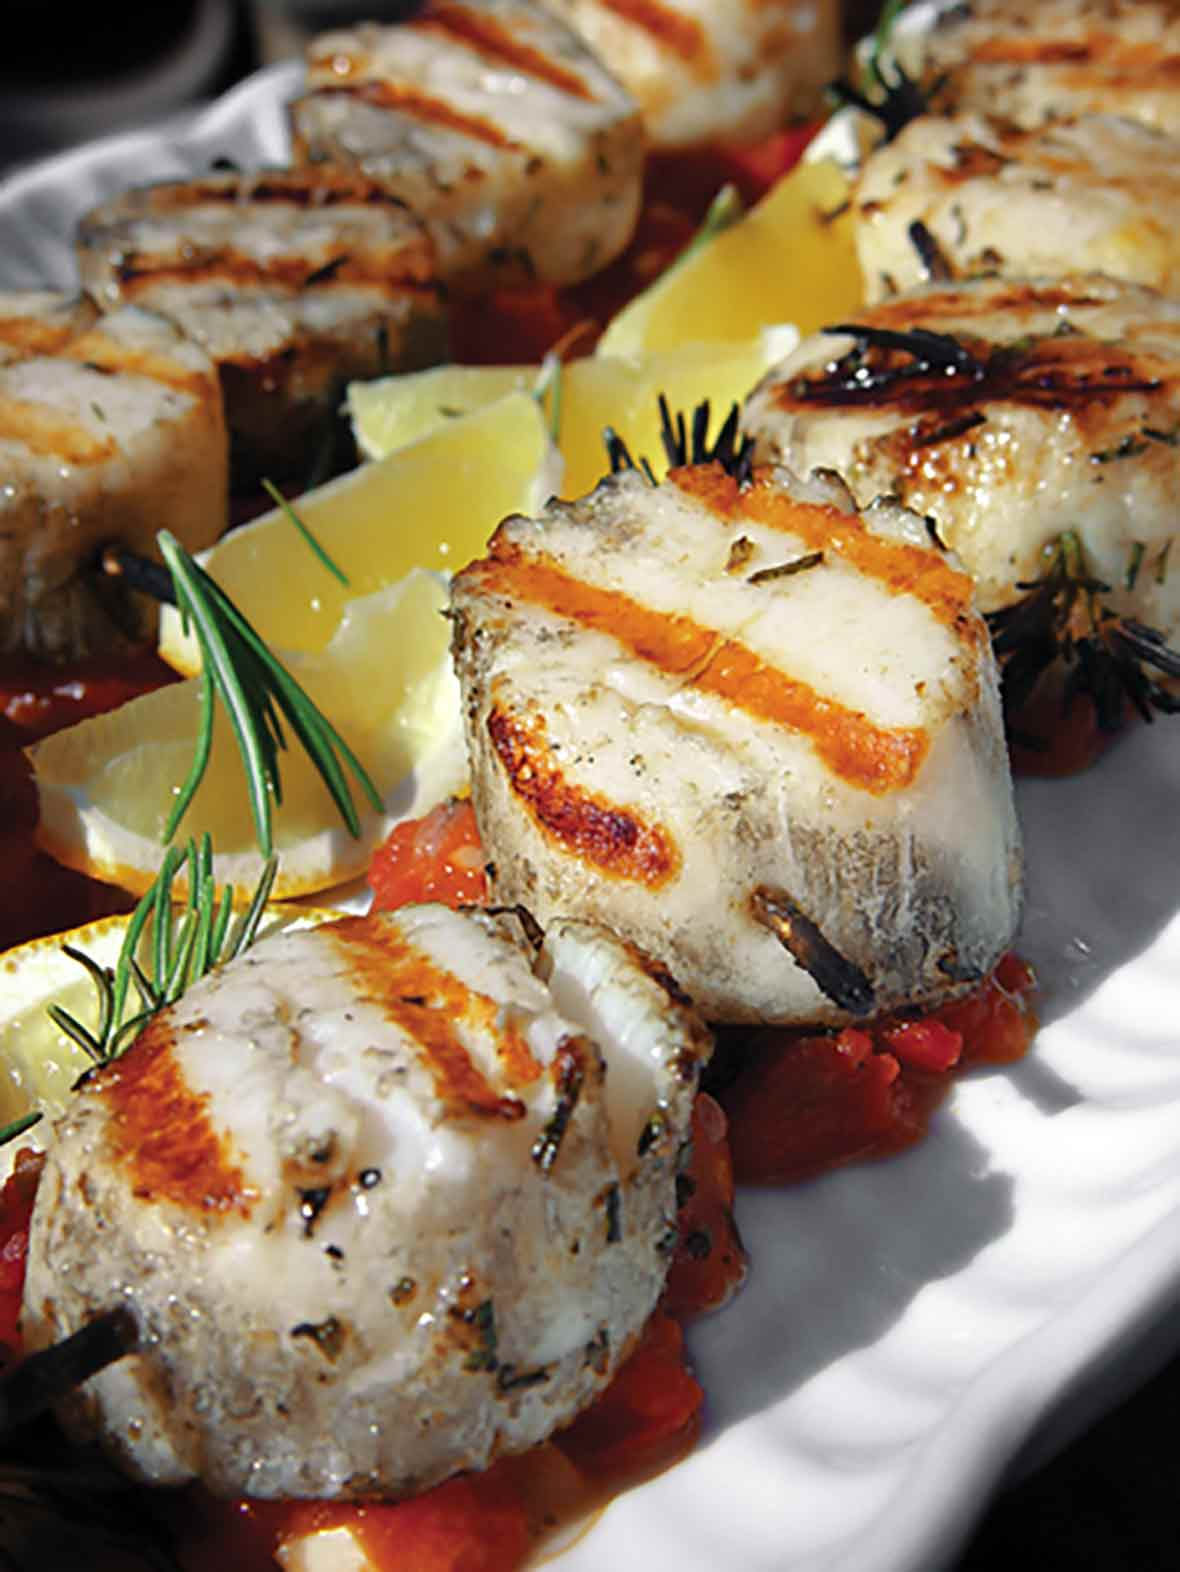 Grilled scallops are threaded on rosemary skewers and sitting on a bed of tomato chutney